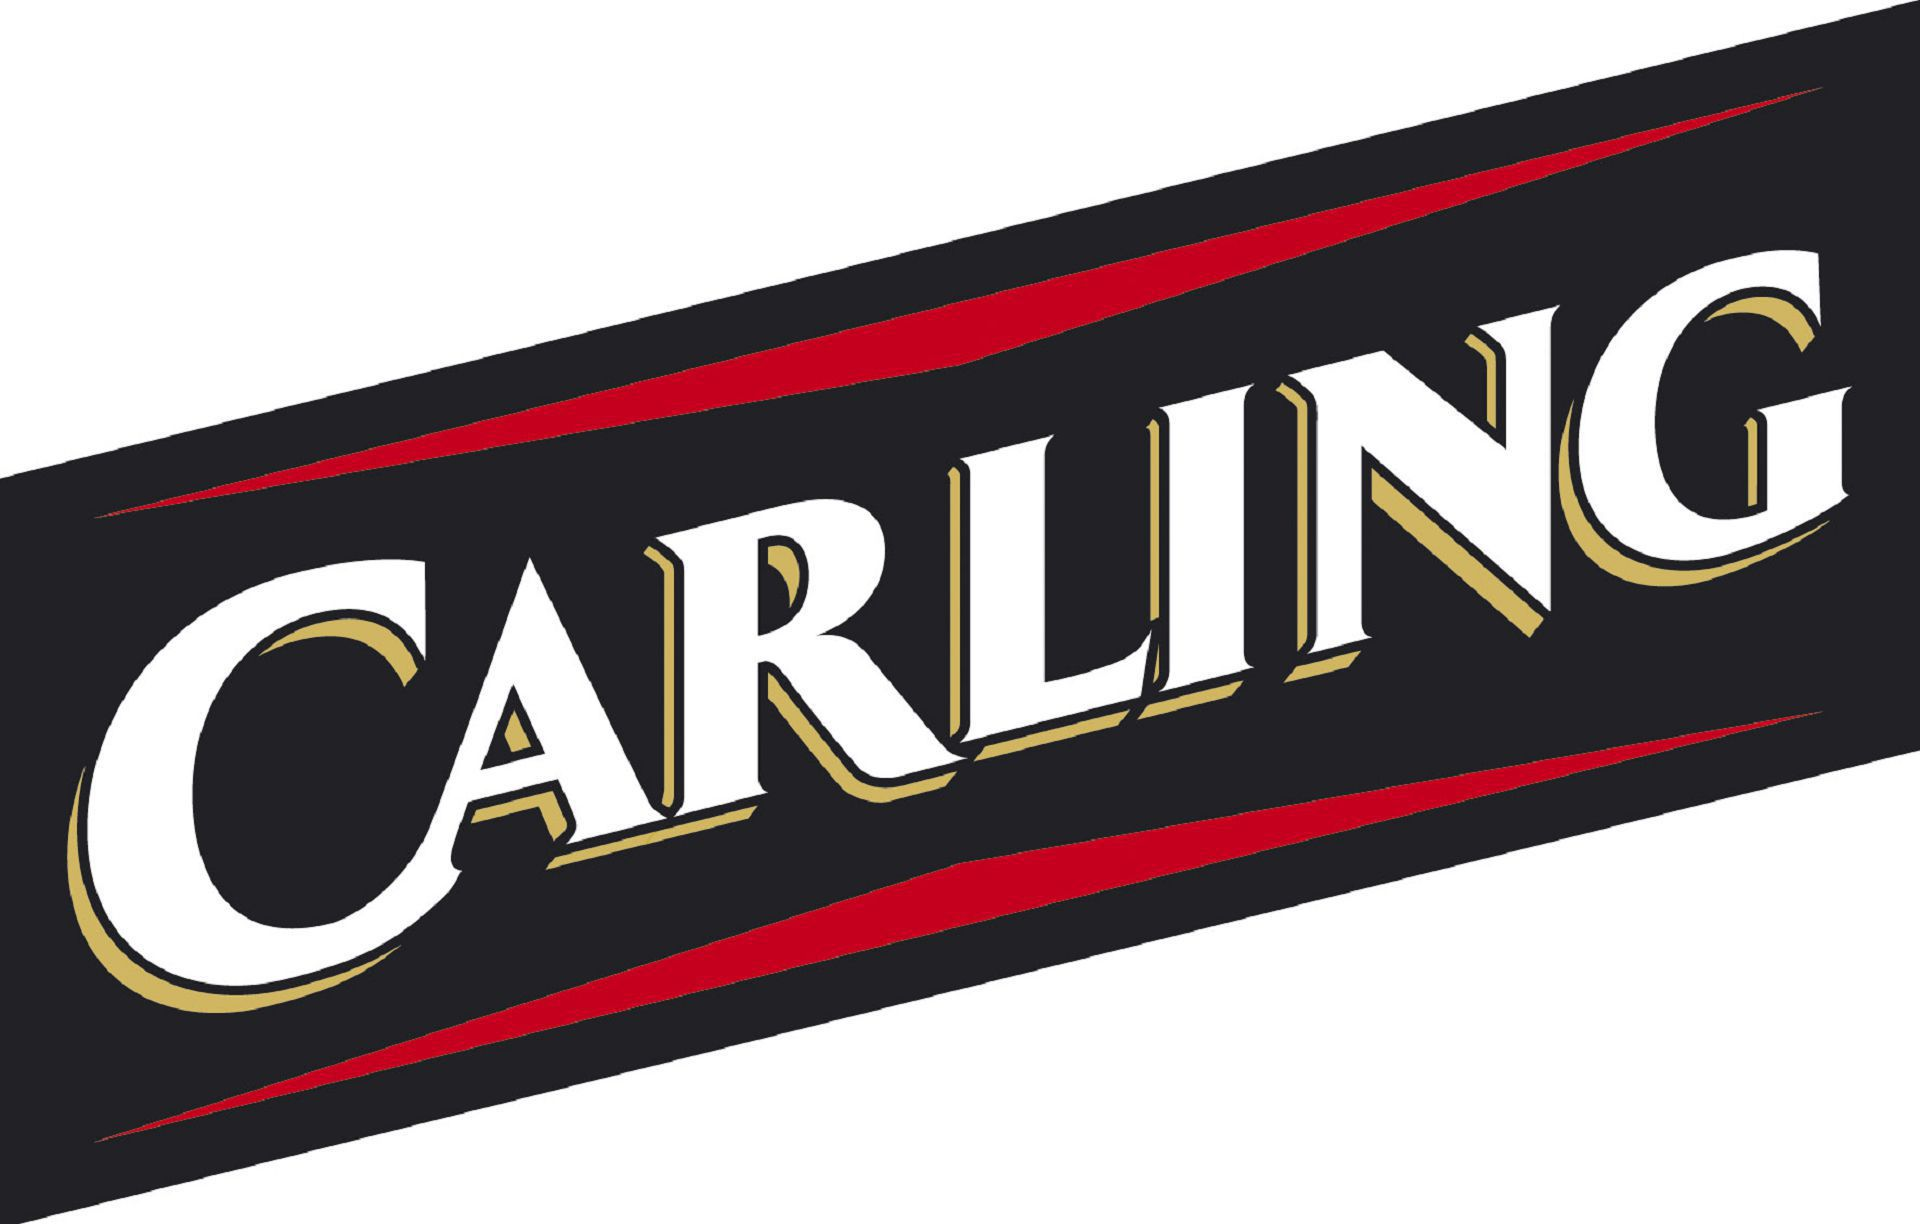 Carling Background